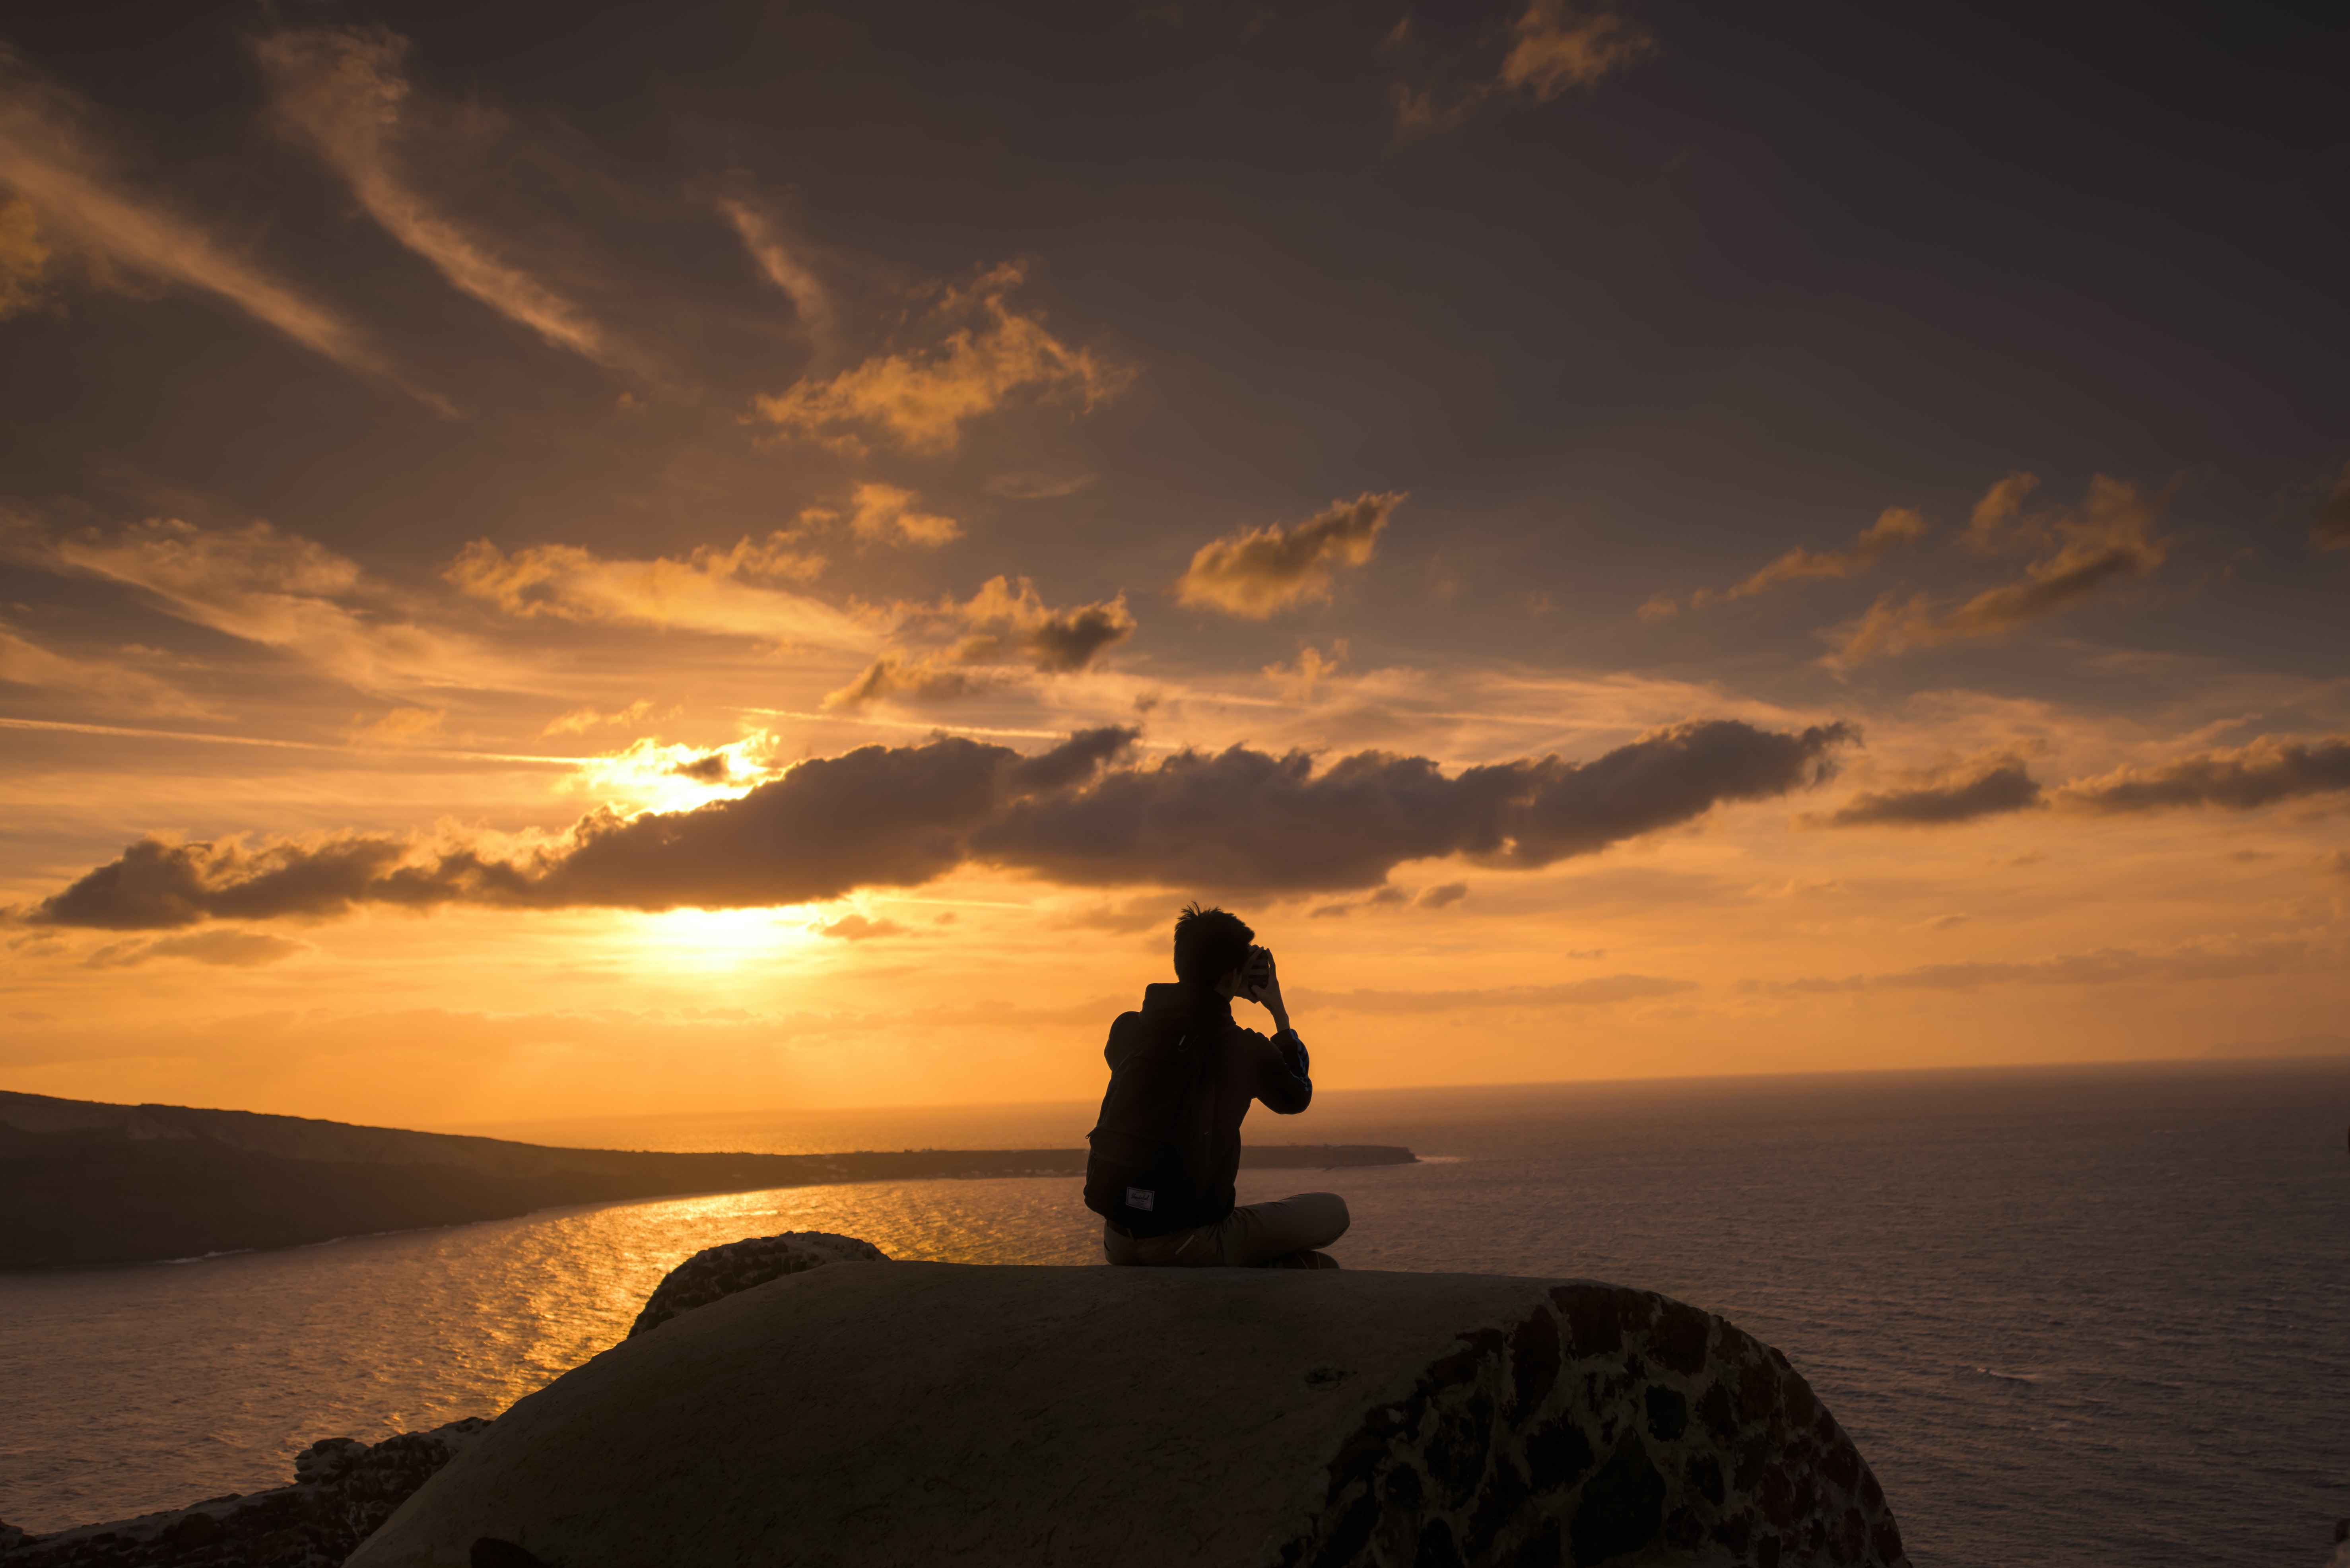 silhouette of person sitting on hill near body of water